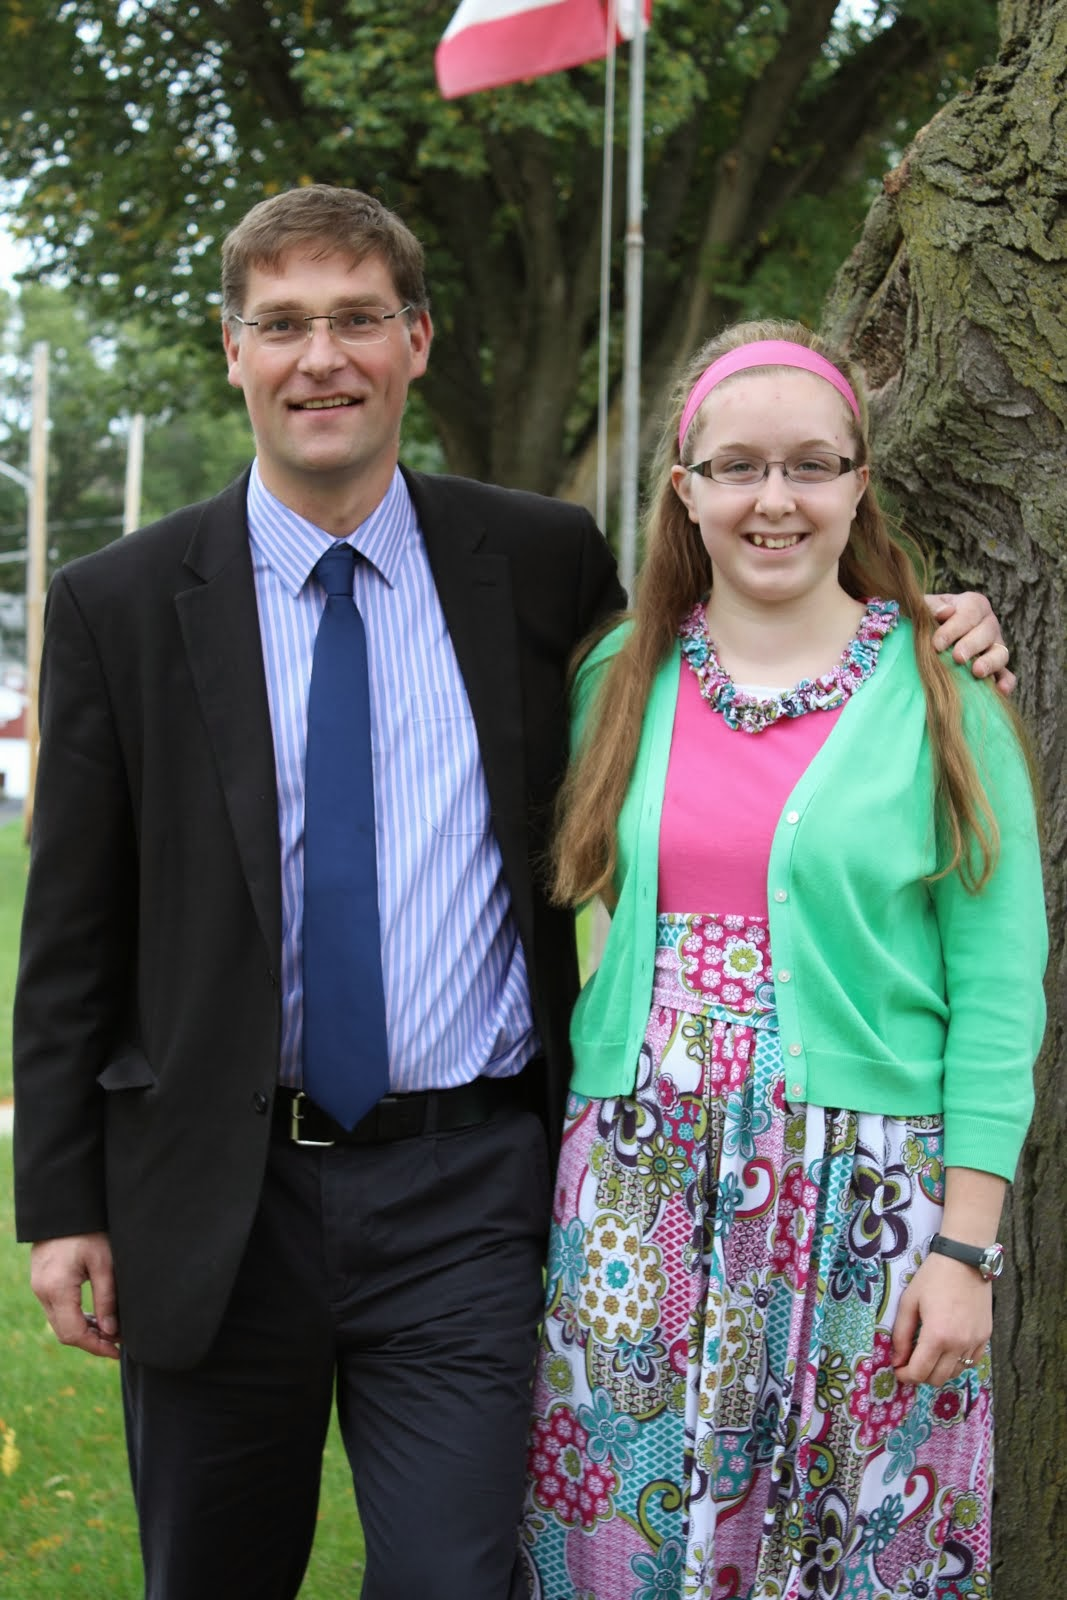 Blogger: Allison Ockenfels with the founder of Mary's Meals, Magnus MacFarlane-Barrow from Scotland